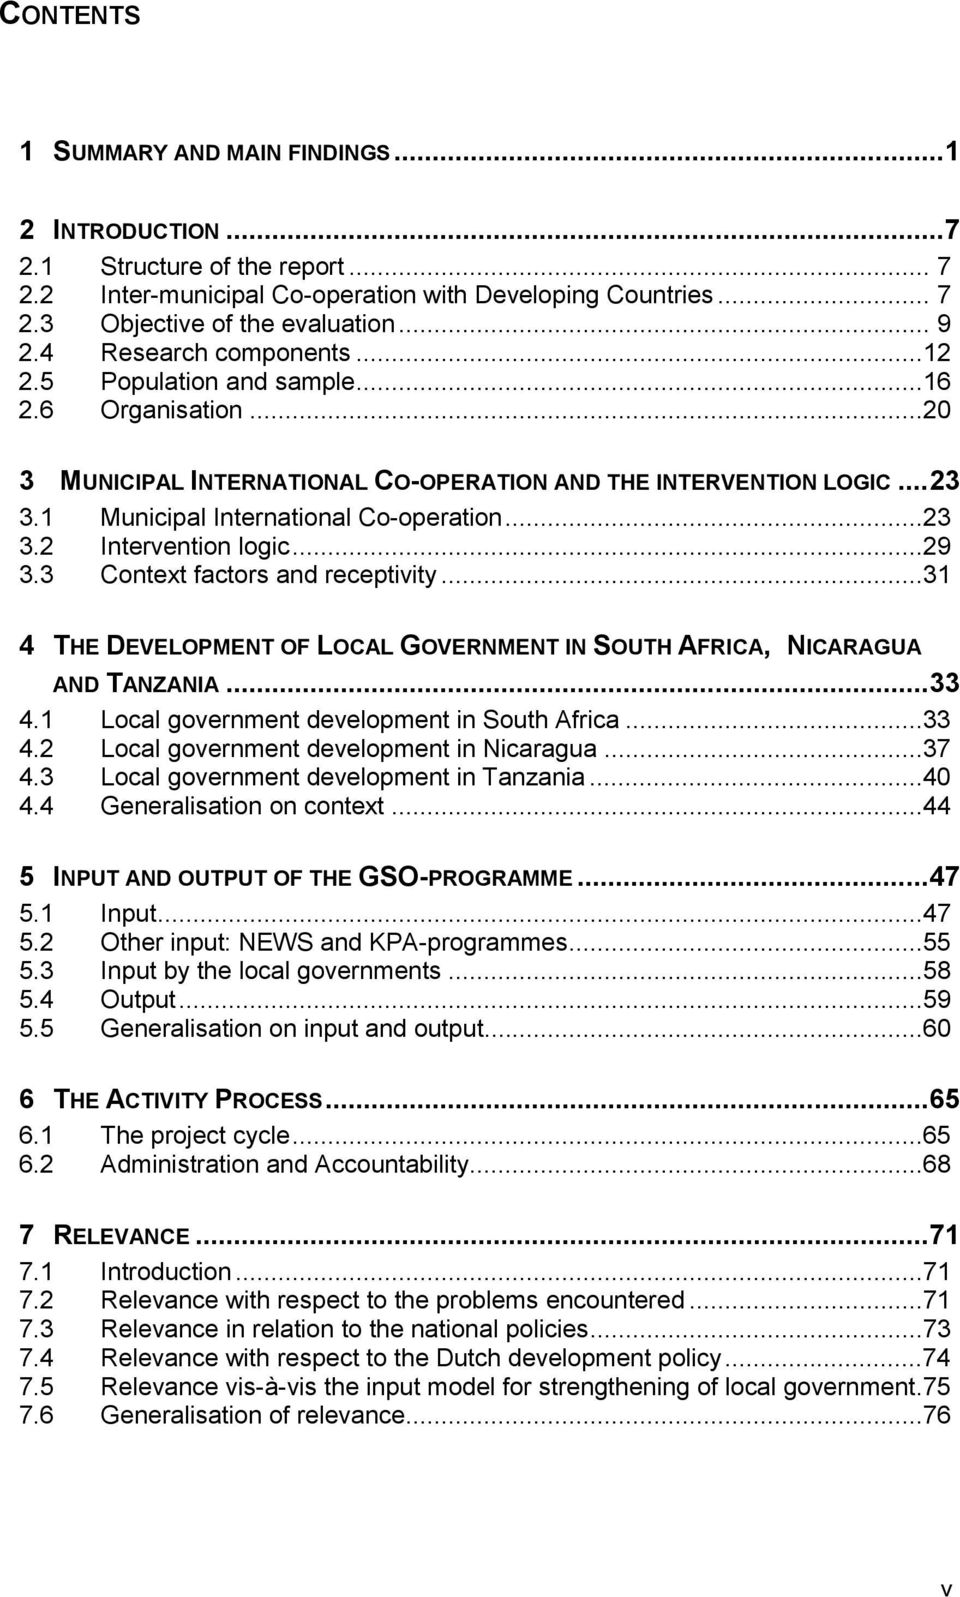 ..29 3.3 Context factors and receptivity...31 4 THE DEVELOPMENT OF LOCAL GOVERNMENT IN SOUTH AFRICA, NICARAGUA AND TANZANIA...33 4.1 Local government development in South Africa...33 4.2 Local government development in Nicaragua.